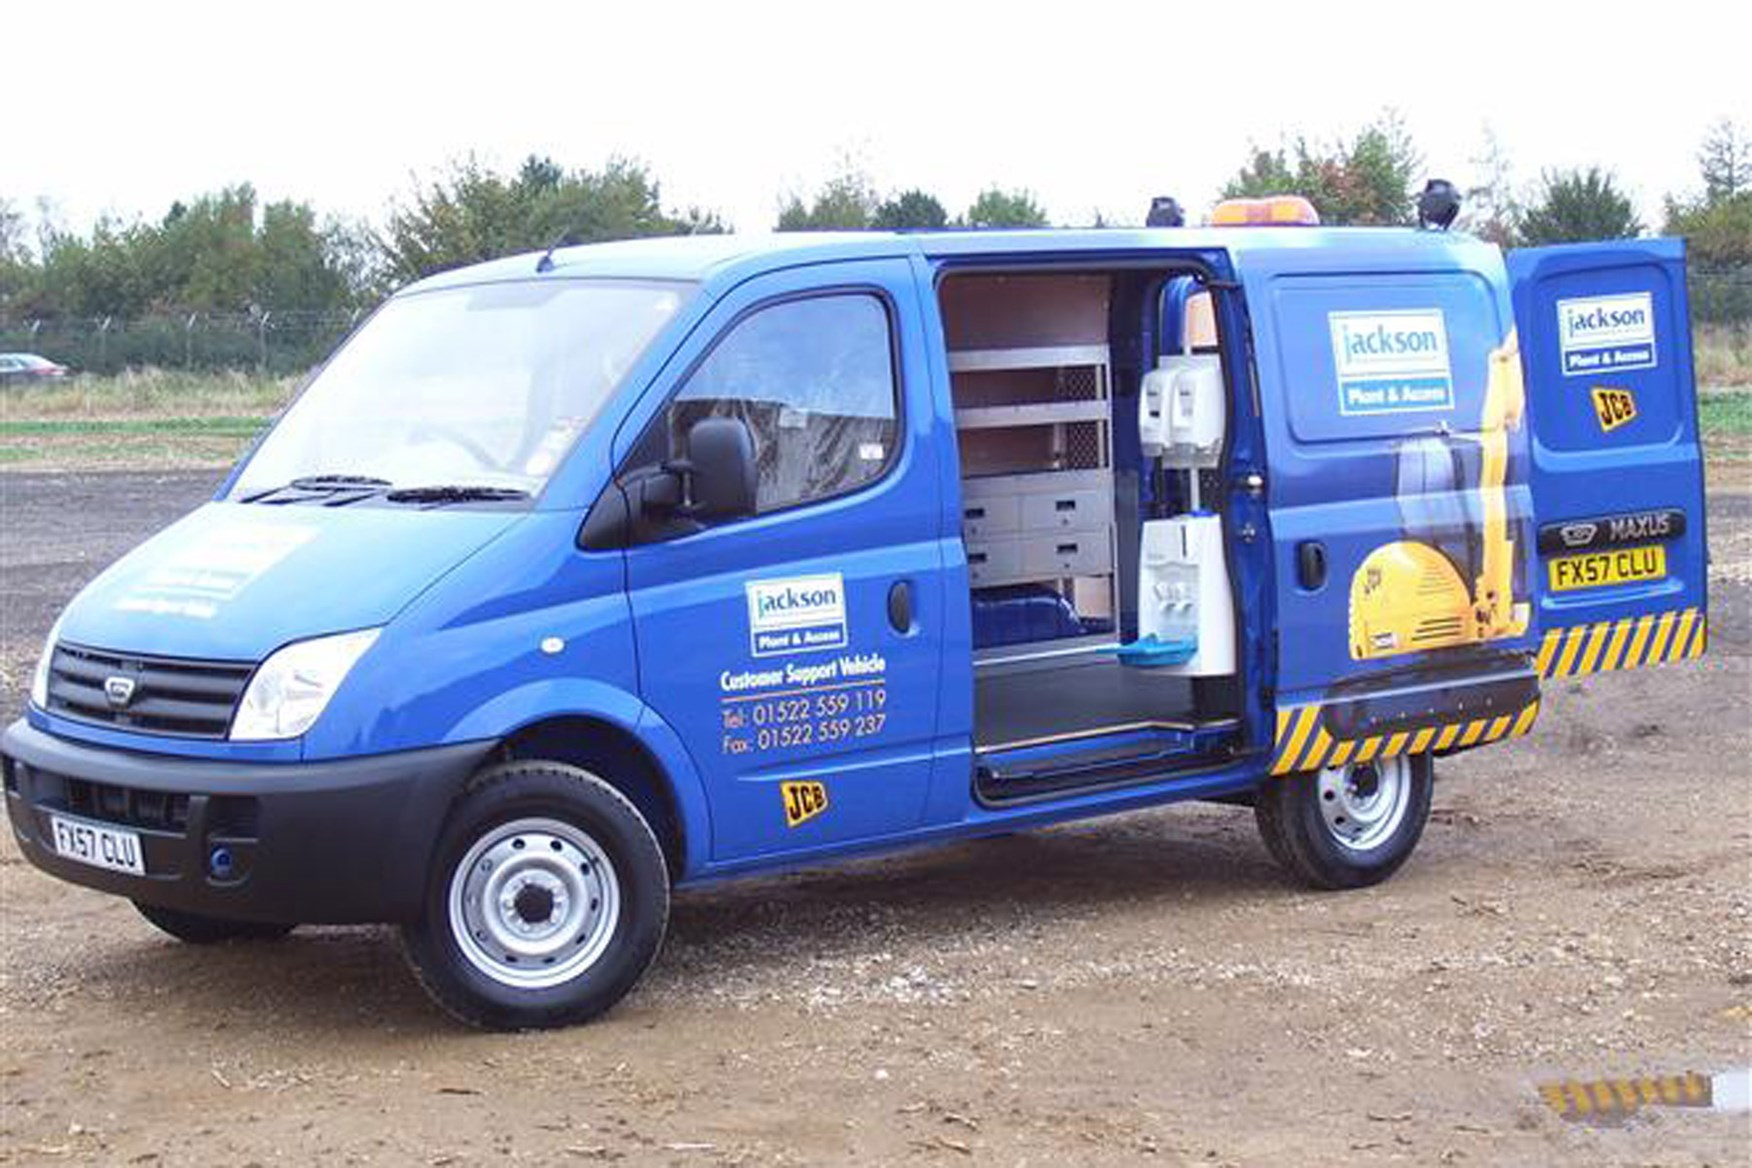 LDV Maxus review on Parkers Vans - load area access